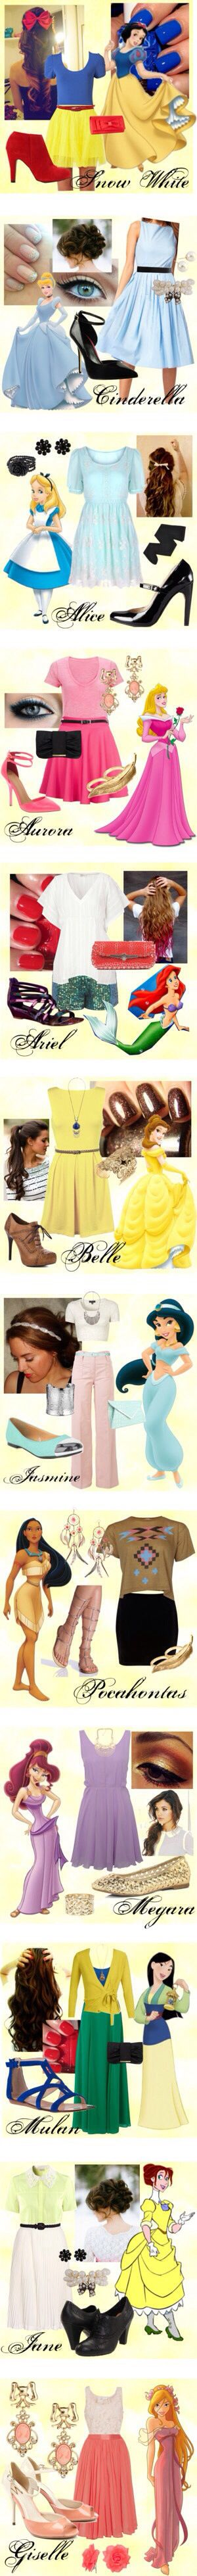 Always wanted to dress like a Disney priness!